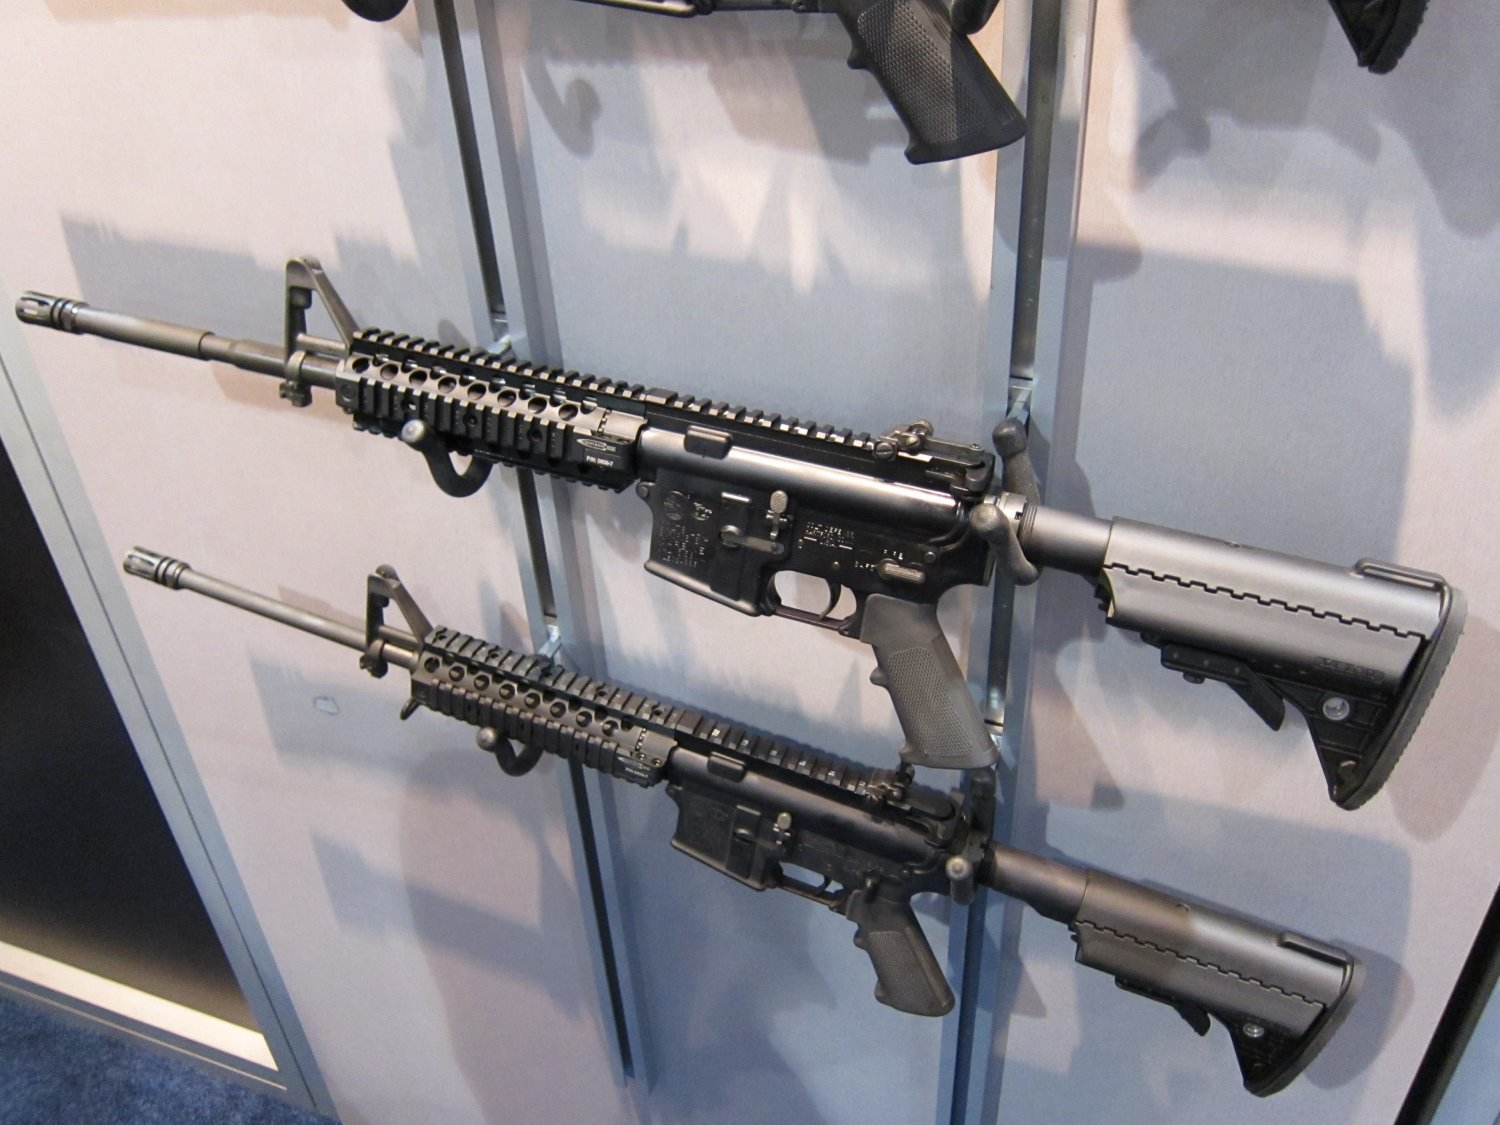 shot show 2010 colt tactical ar carbines 3 <!  :en  >Colt Defense Launches Colt Tactical Carbines/Rifles for Civilian Tactical Shooters at SHOT Show 2010: Tactical Guns Accessorized for Intensive Tactical Training<!  :  >